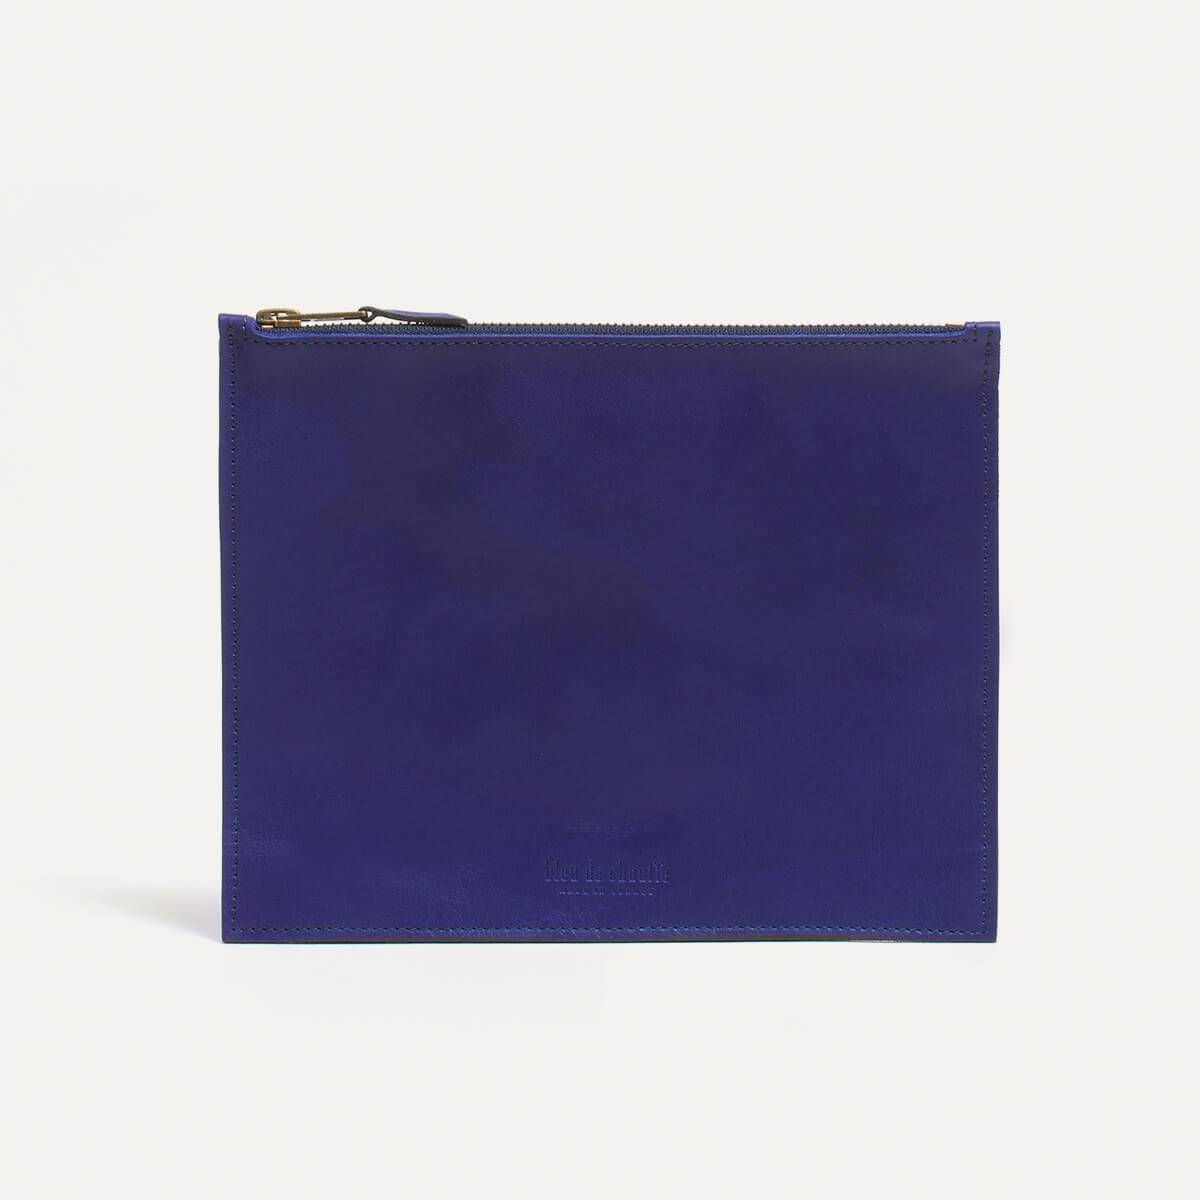 Leather Pouch COSMO M - blue (image n°2)